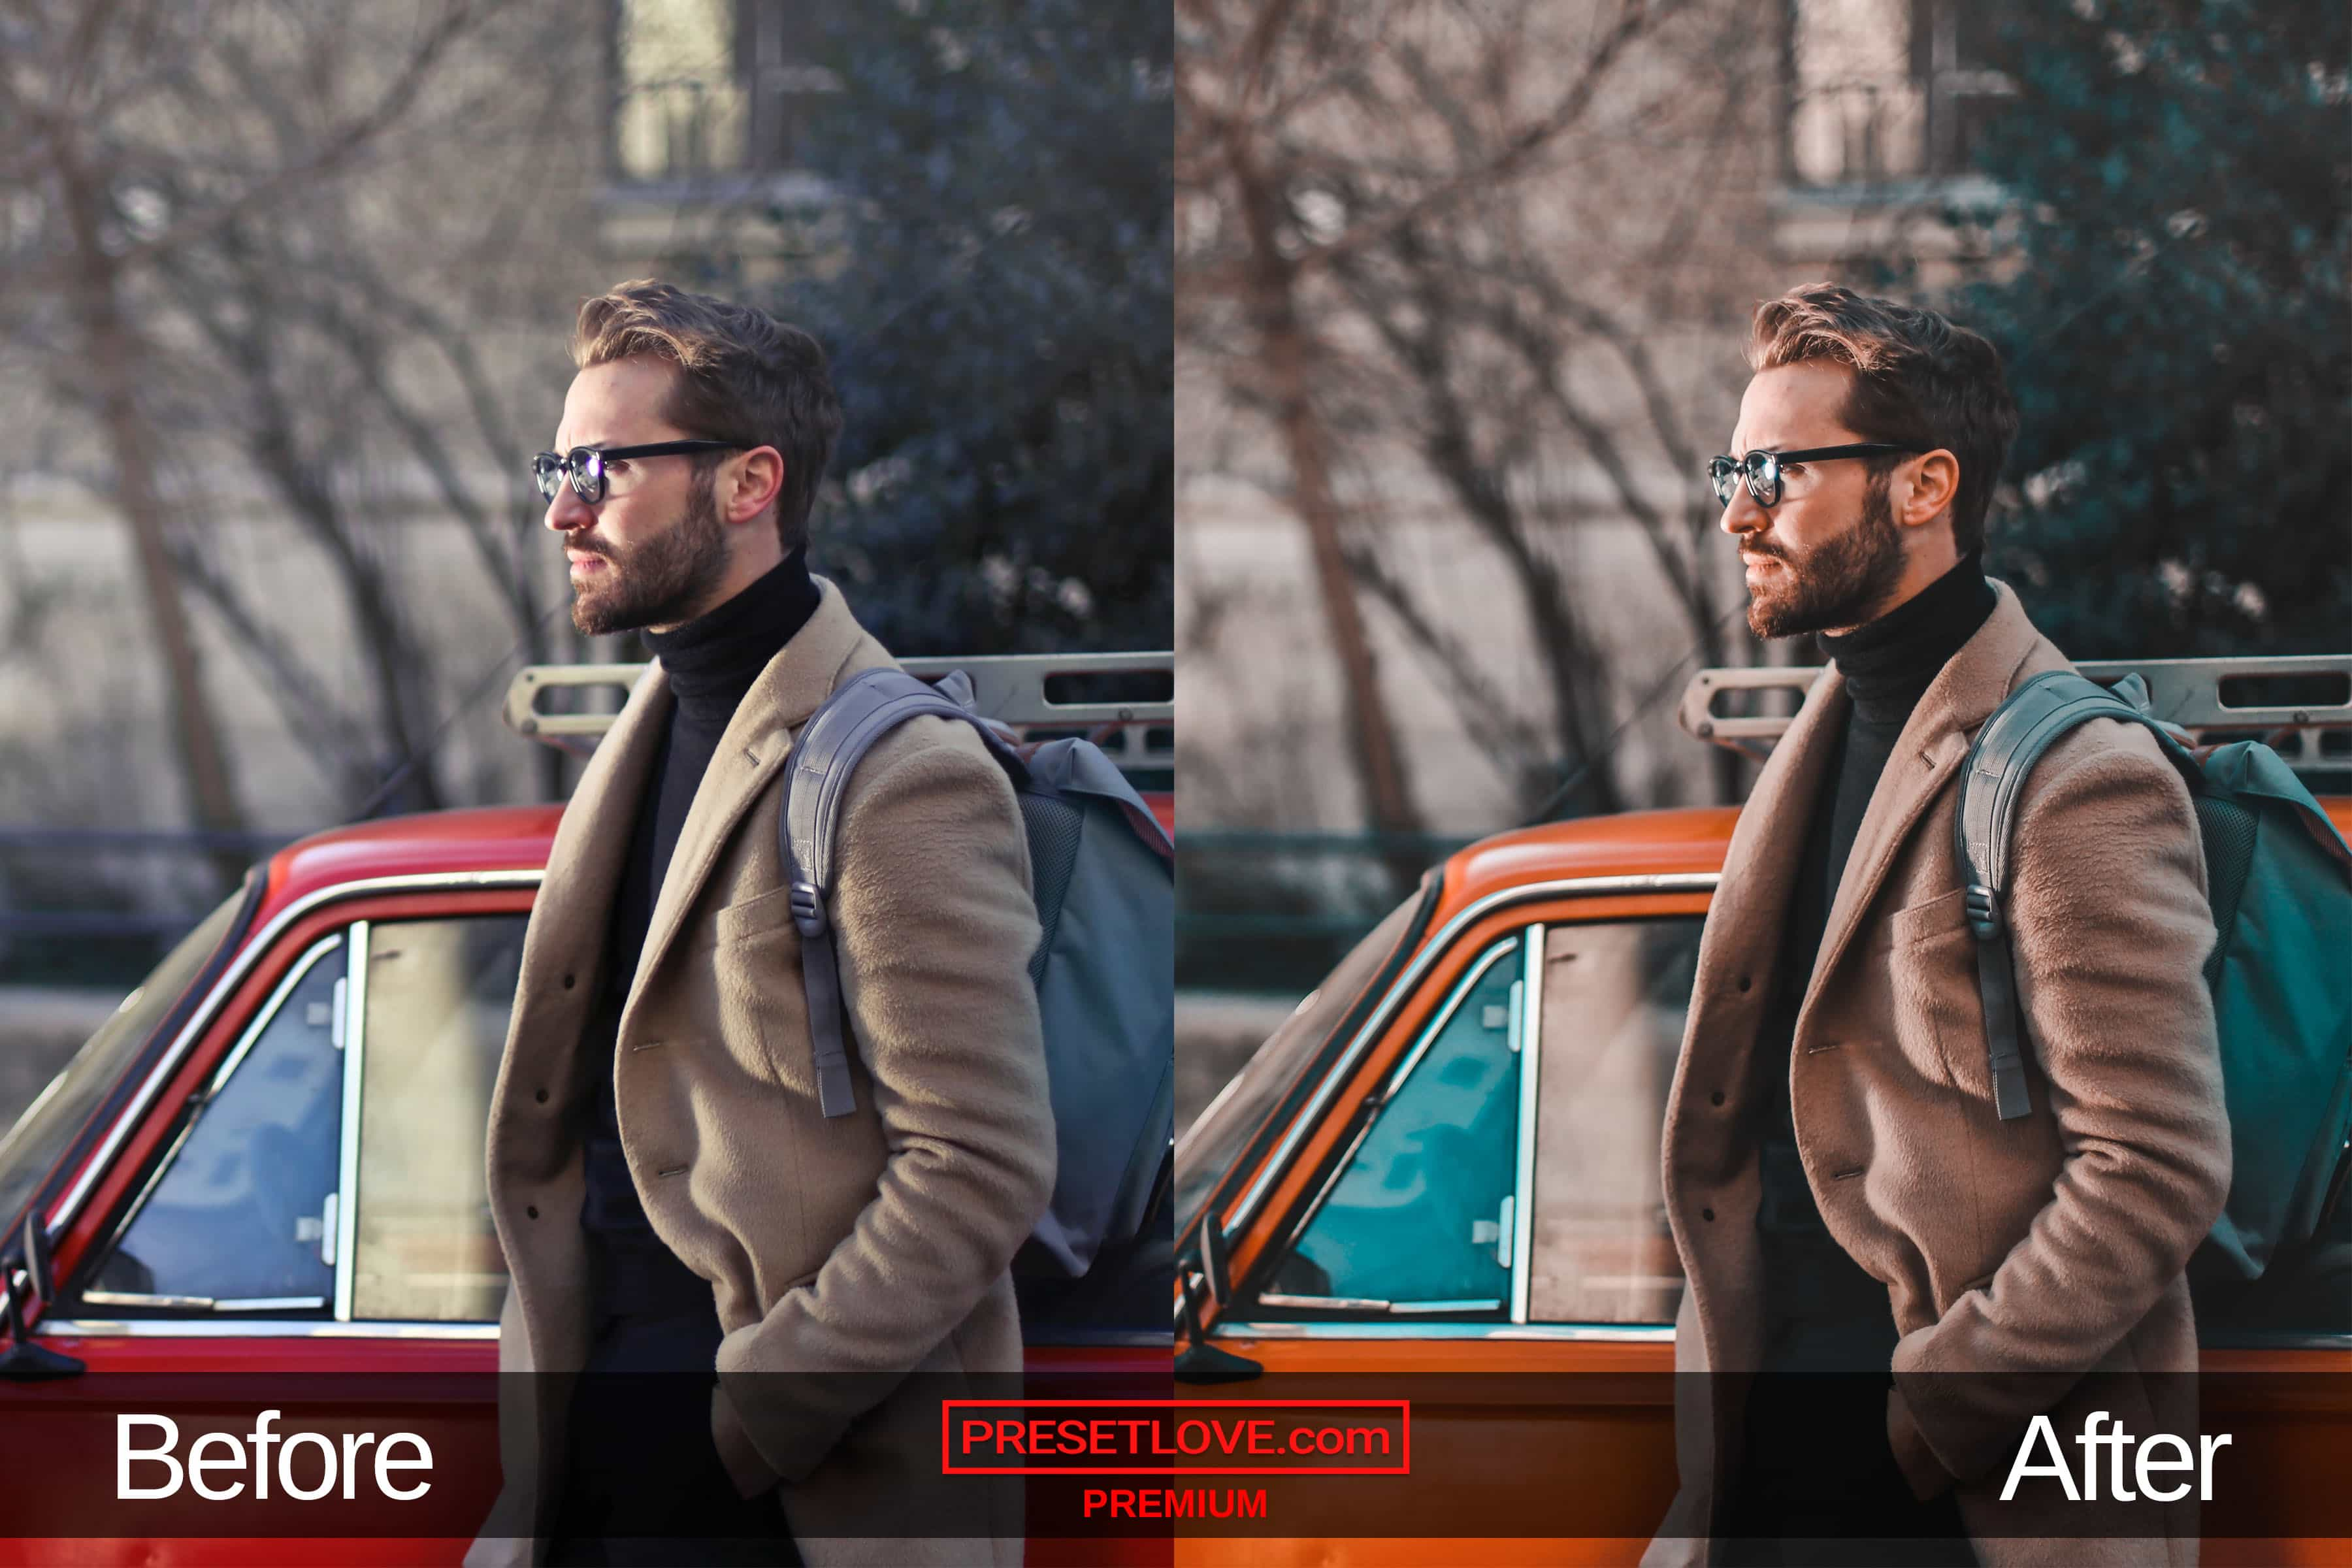 Photo of a man wearing a beige coat and a backpack, with an orange and teal cinematic preset applied